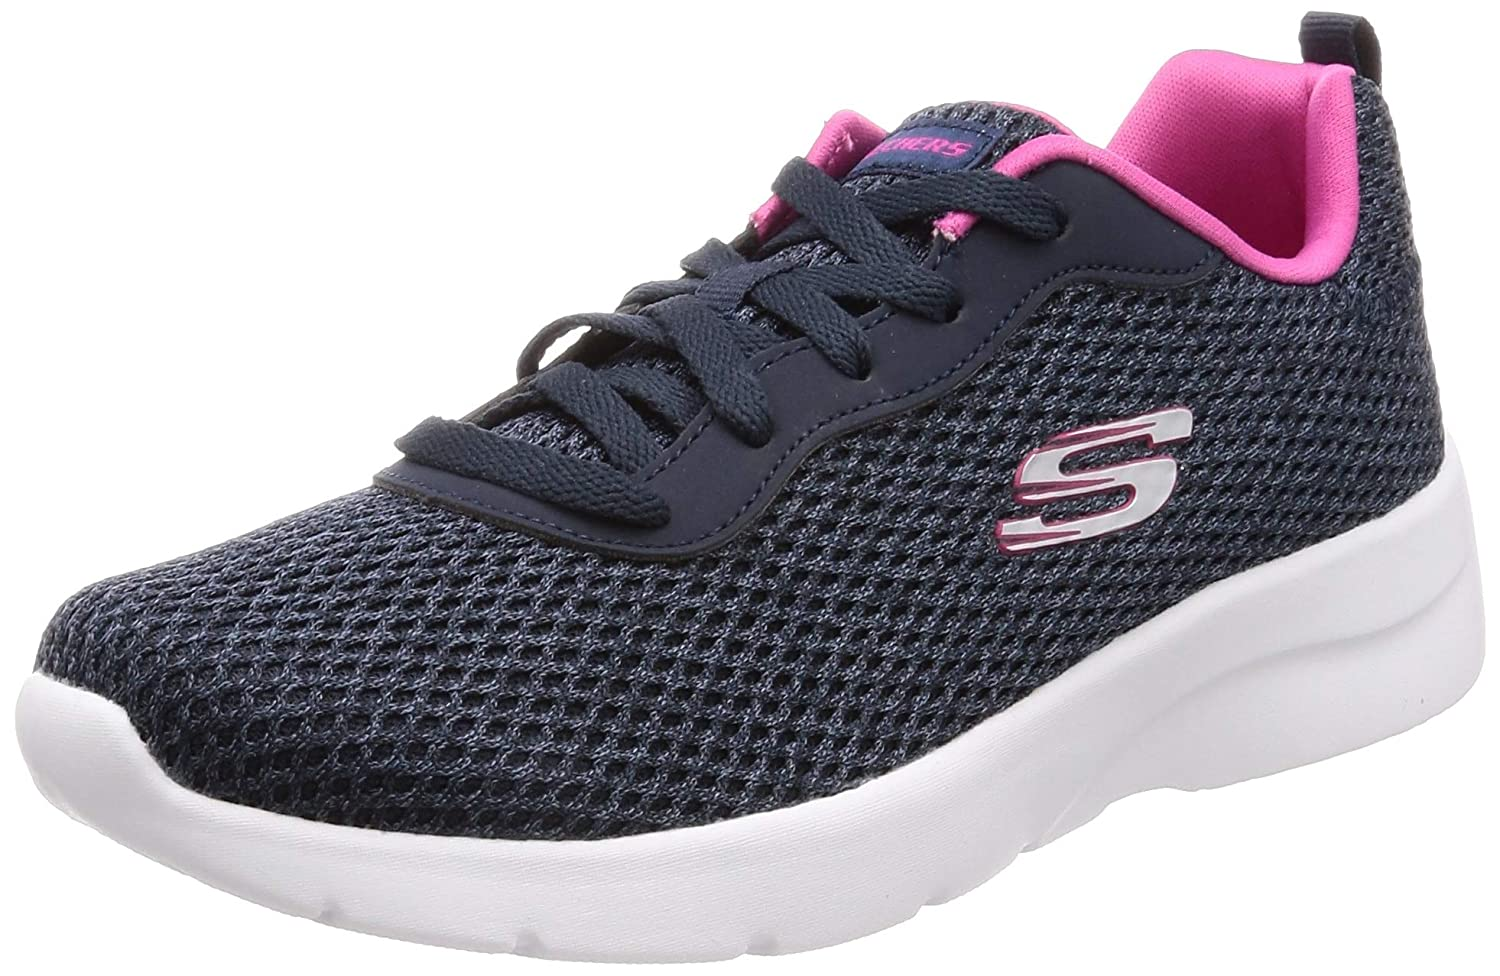 NAVY HOT PINK Skechers Womens Dynamight 2.0-Quick Concept Sneakers